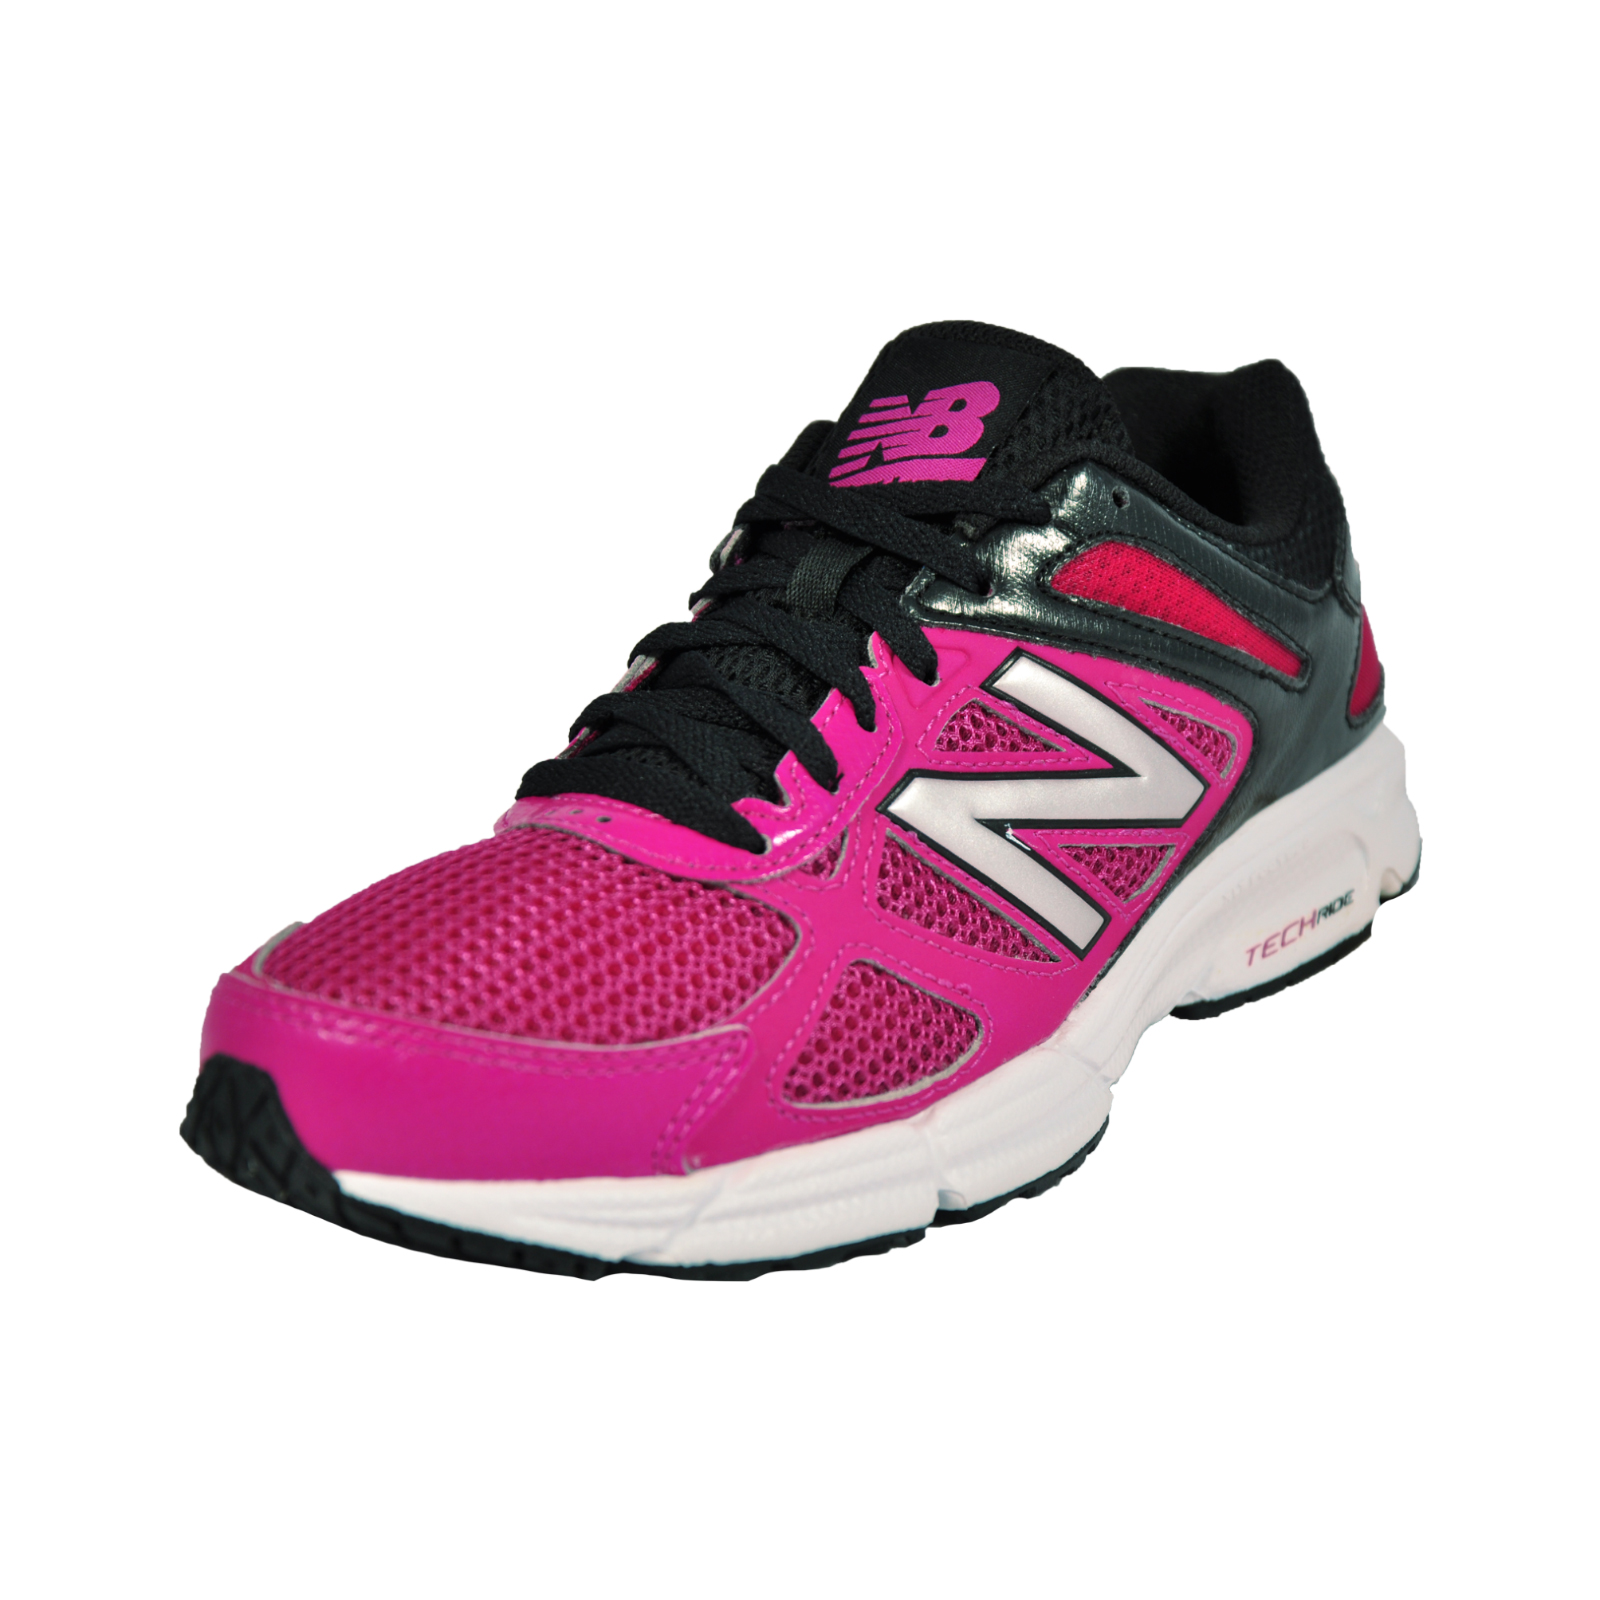 explosión Terminal elevación  New Balance 775 v1 Mens Running Shoes Fitness Gym Trainers Black UK 8 Only  innovatis-suisse.ch